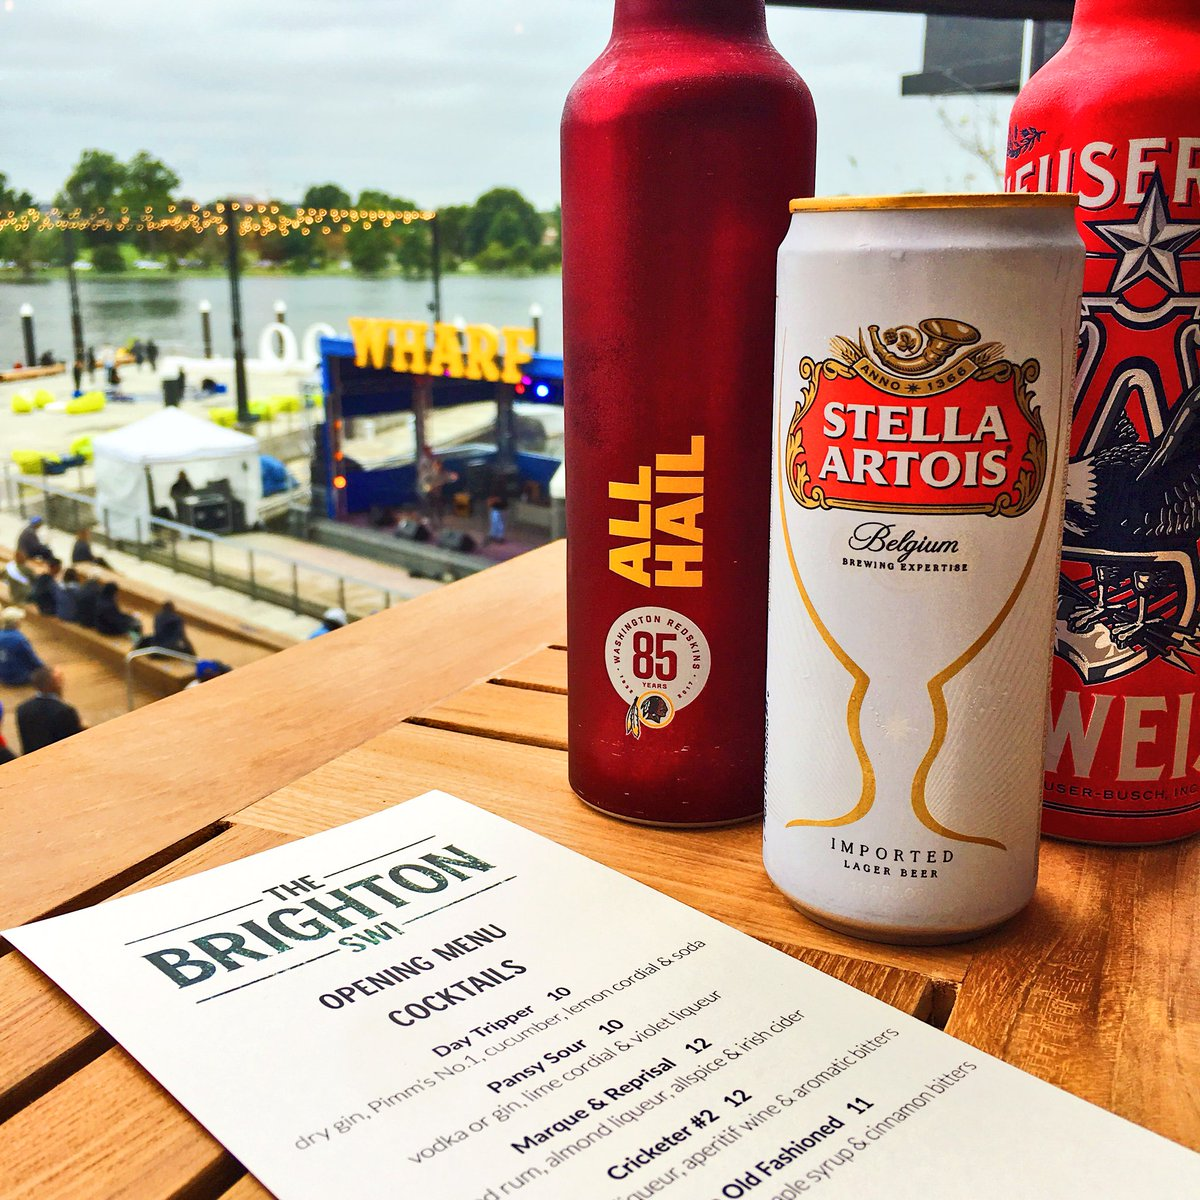 Beer's cold. Music's playing. It's gonna be a great opening weekend. #WharfDC <br>http://pic.twitter.com/KE8LCTV2cY &ndash; à SW Waterfront Wharf